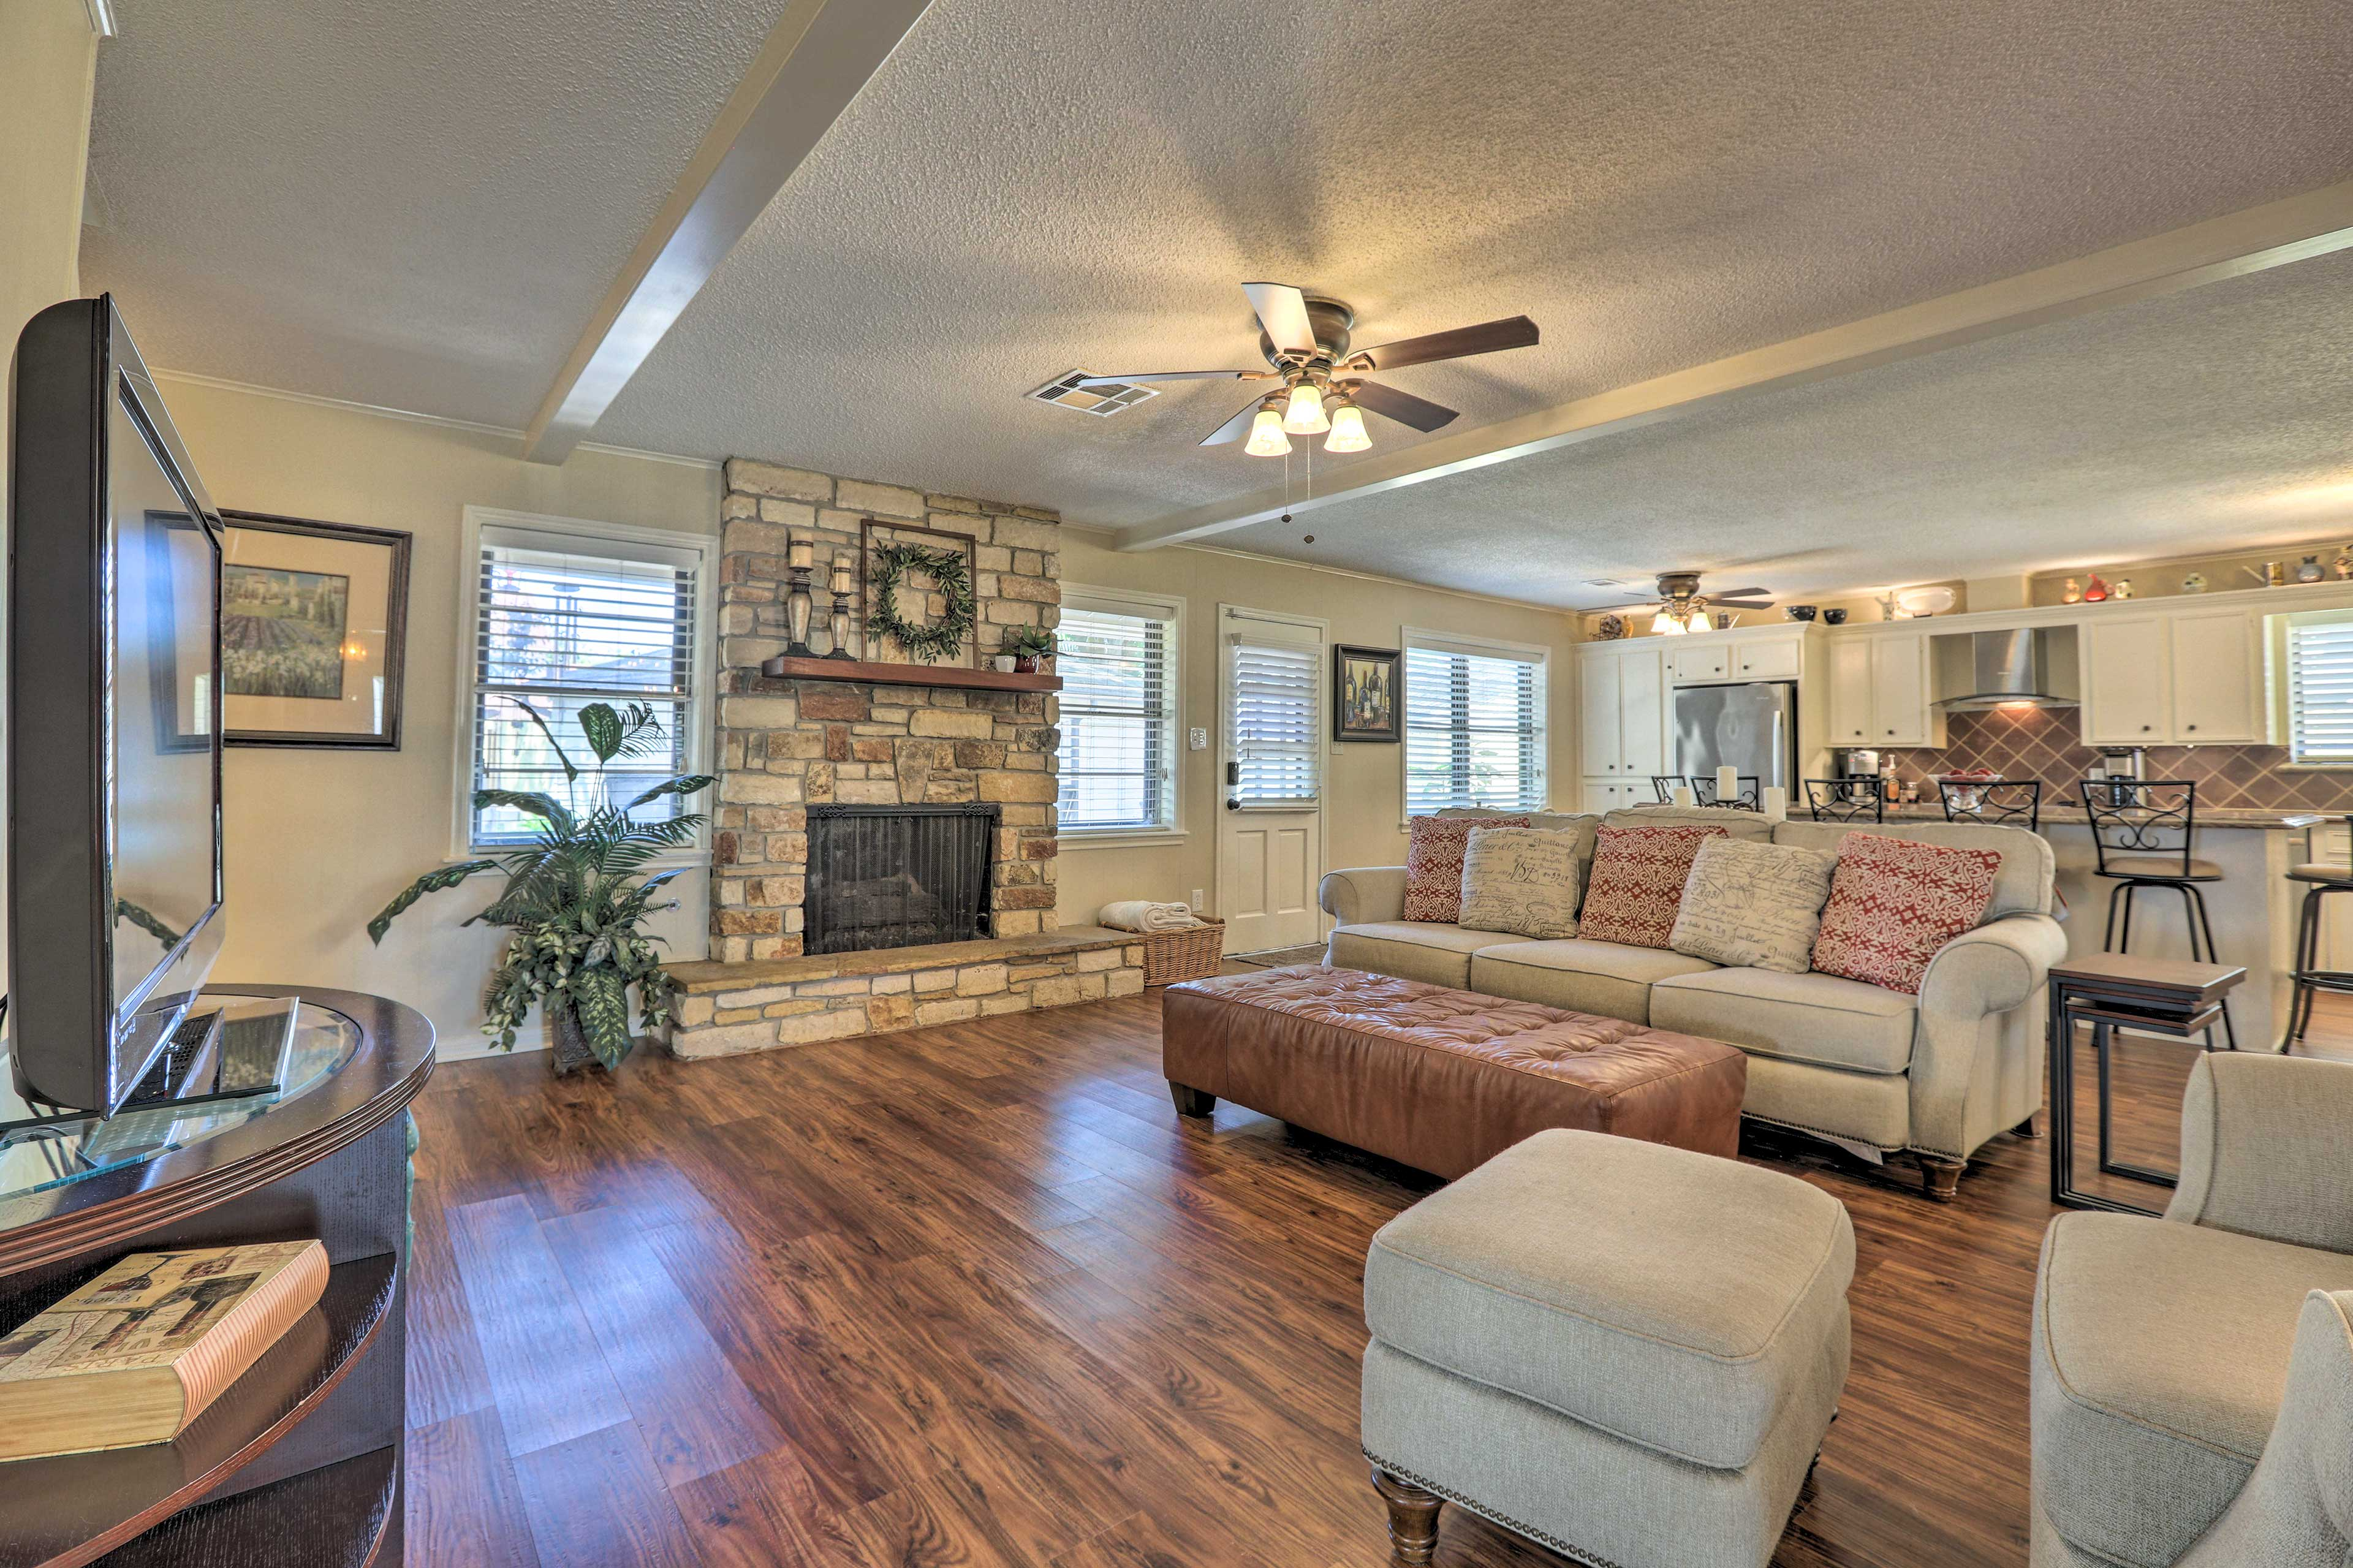 The living room boasts a fireplace and flat-screen TV.